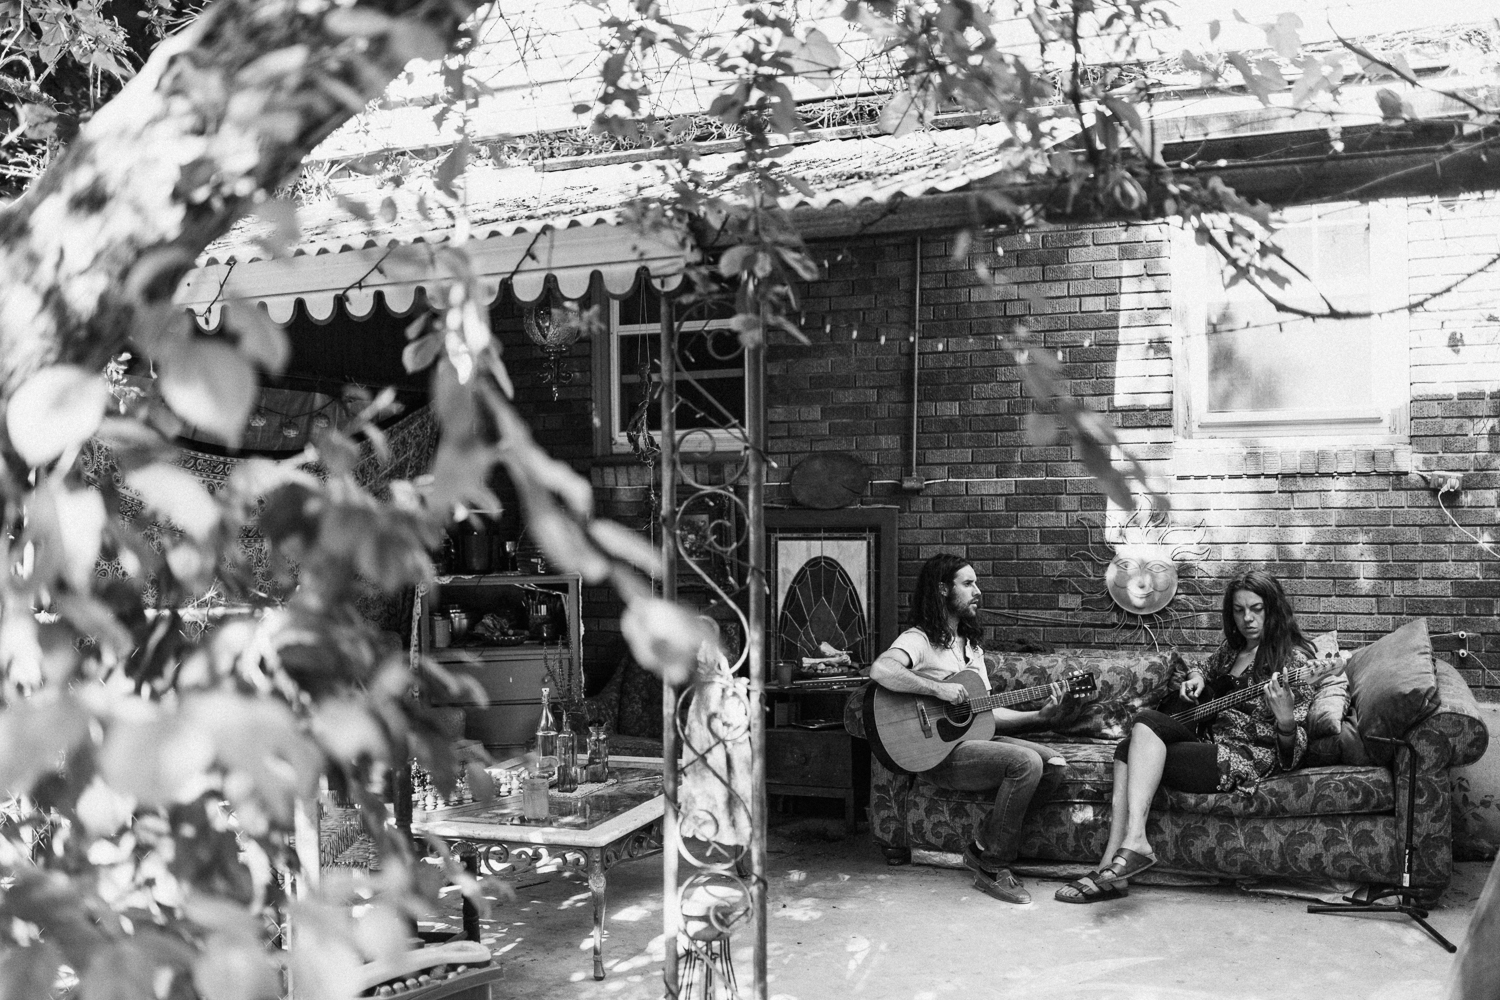 husband-and-wife-jamming-on-couch-in-backyard-family-photo-session-with-jen-fairchild-photography-slc-ut